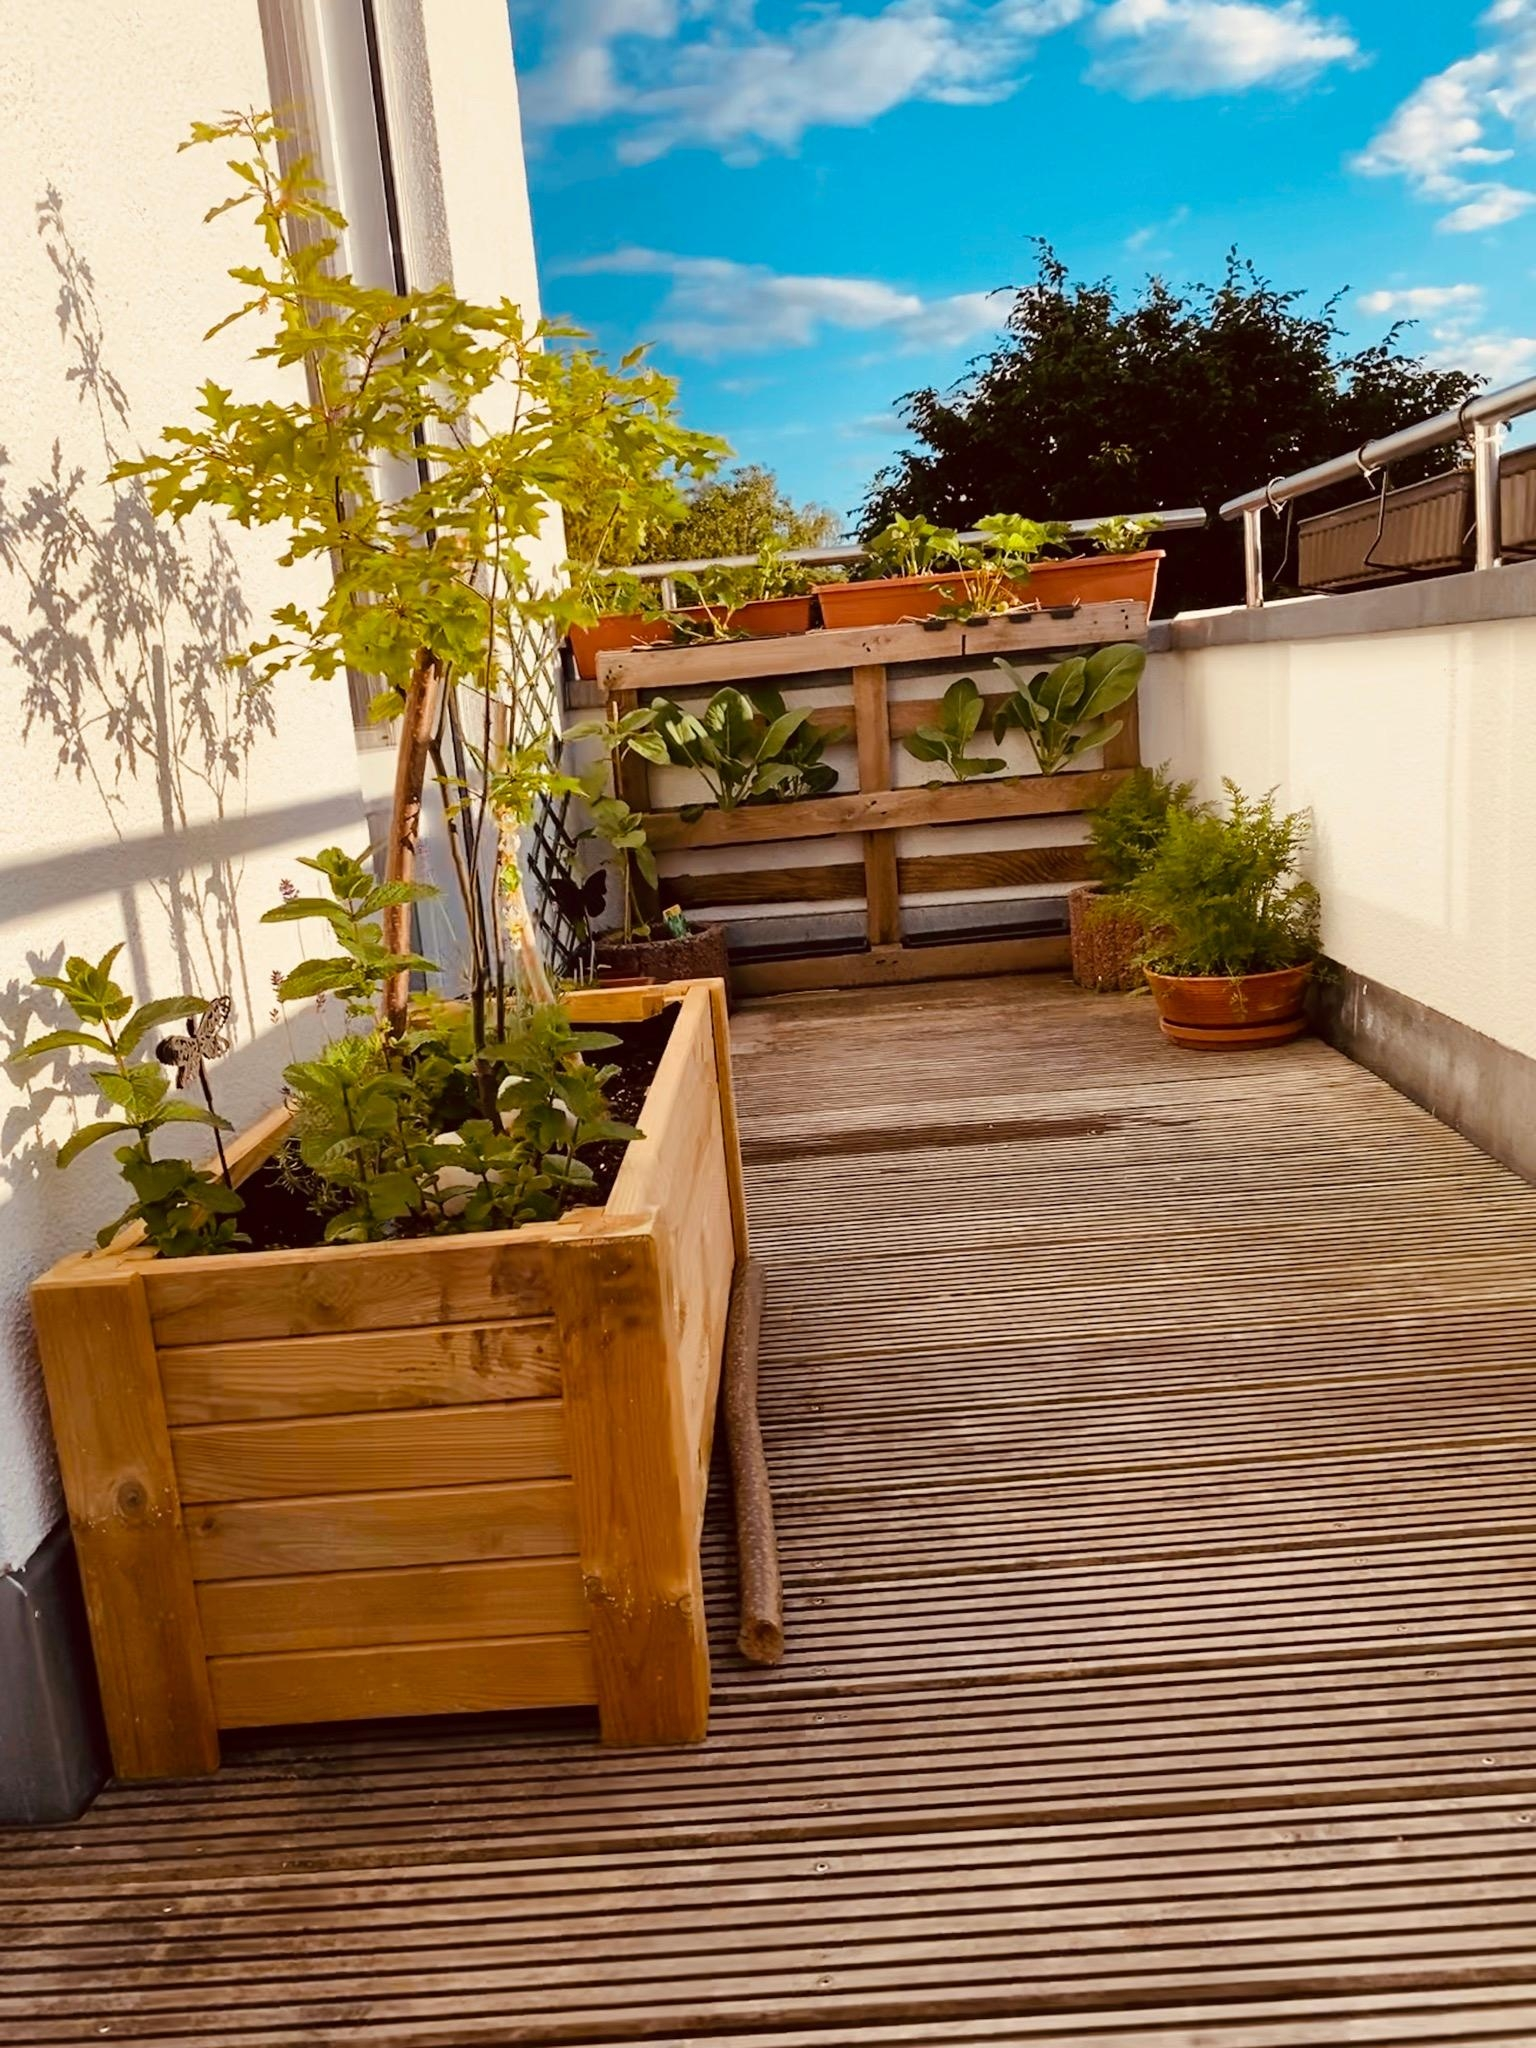 #rooftop #gardening #summertime #relaxzone #enjoyoutdoors #plantlover